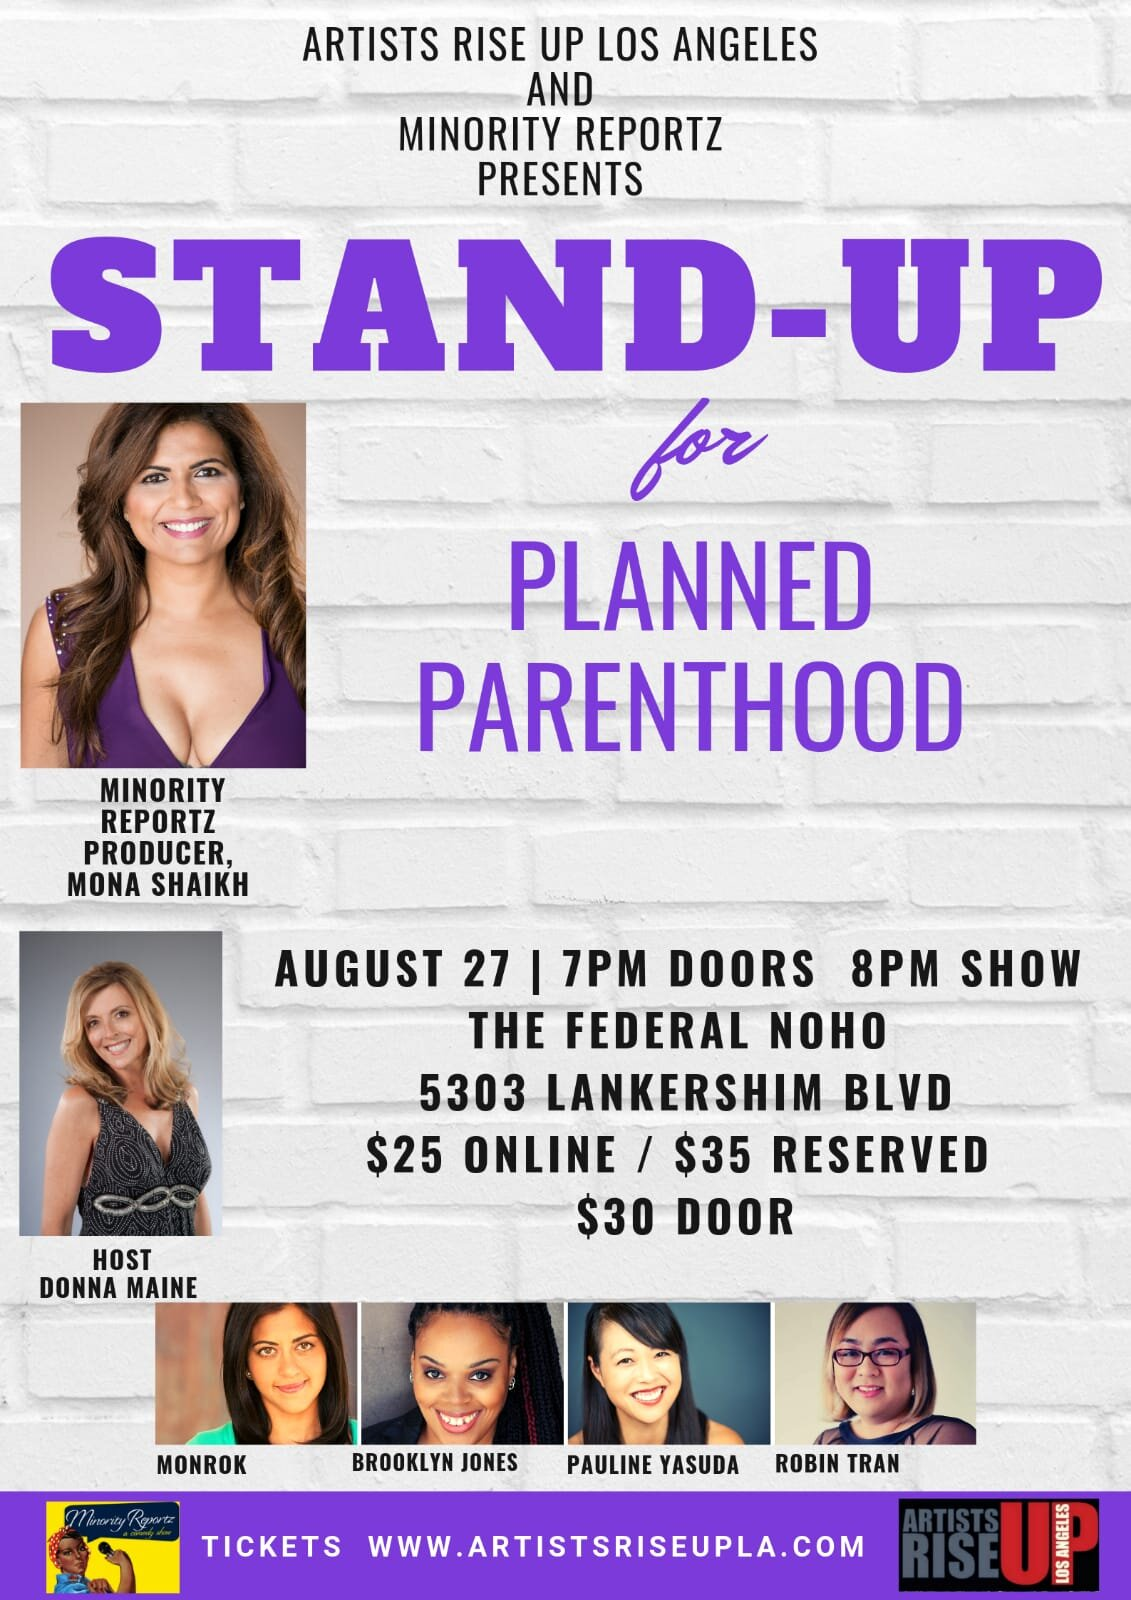 STAND UP FOR PLANNED PARENTHOOD_FLYER_073119.jpg